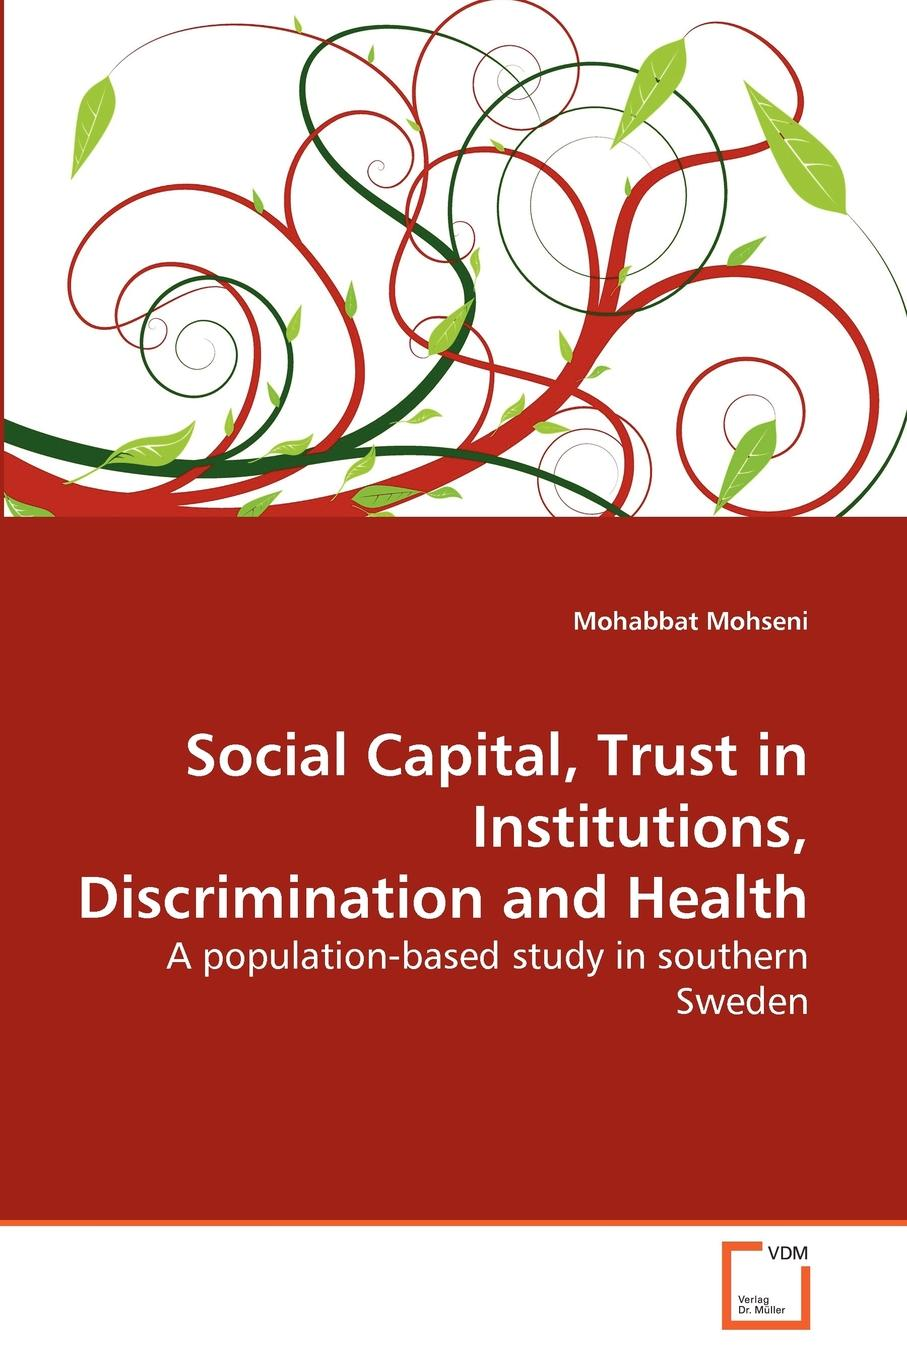 Mohabbat Mohseni Social Capital, Trust in Institutions, Discrimination and Health a van soest explaining subjective well being the role of victimization trust health and social norms